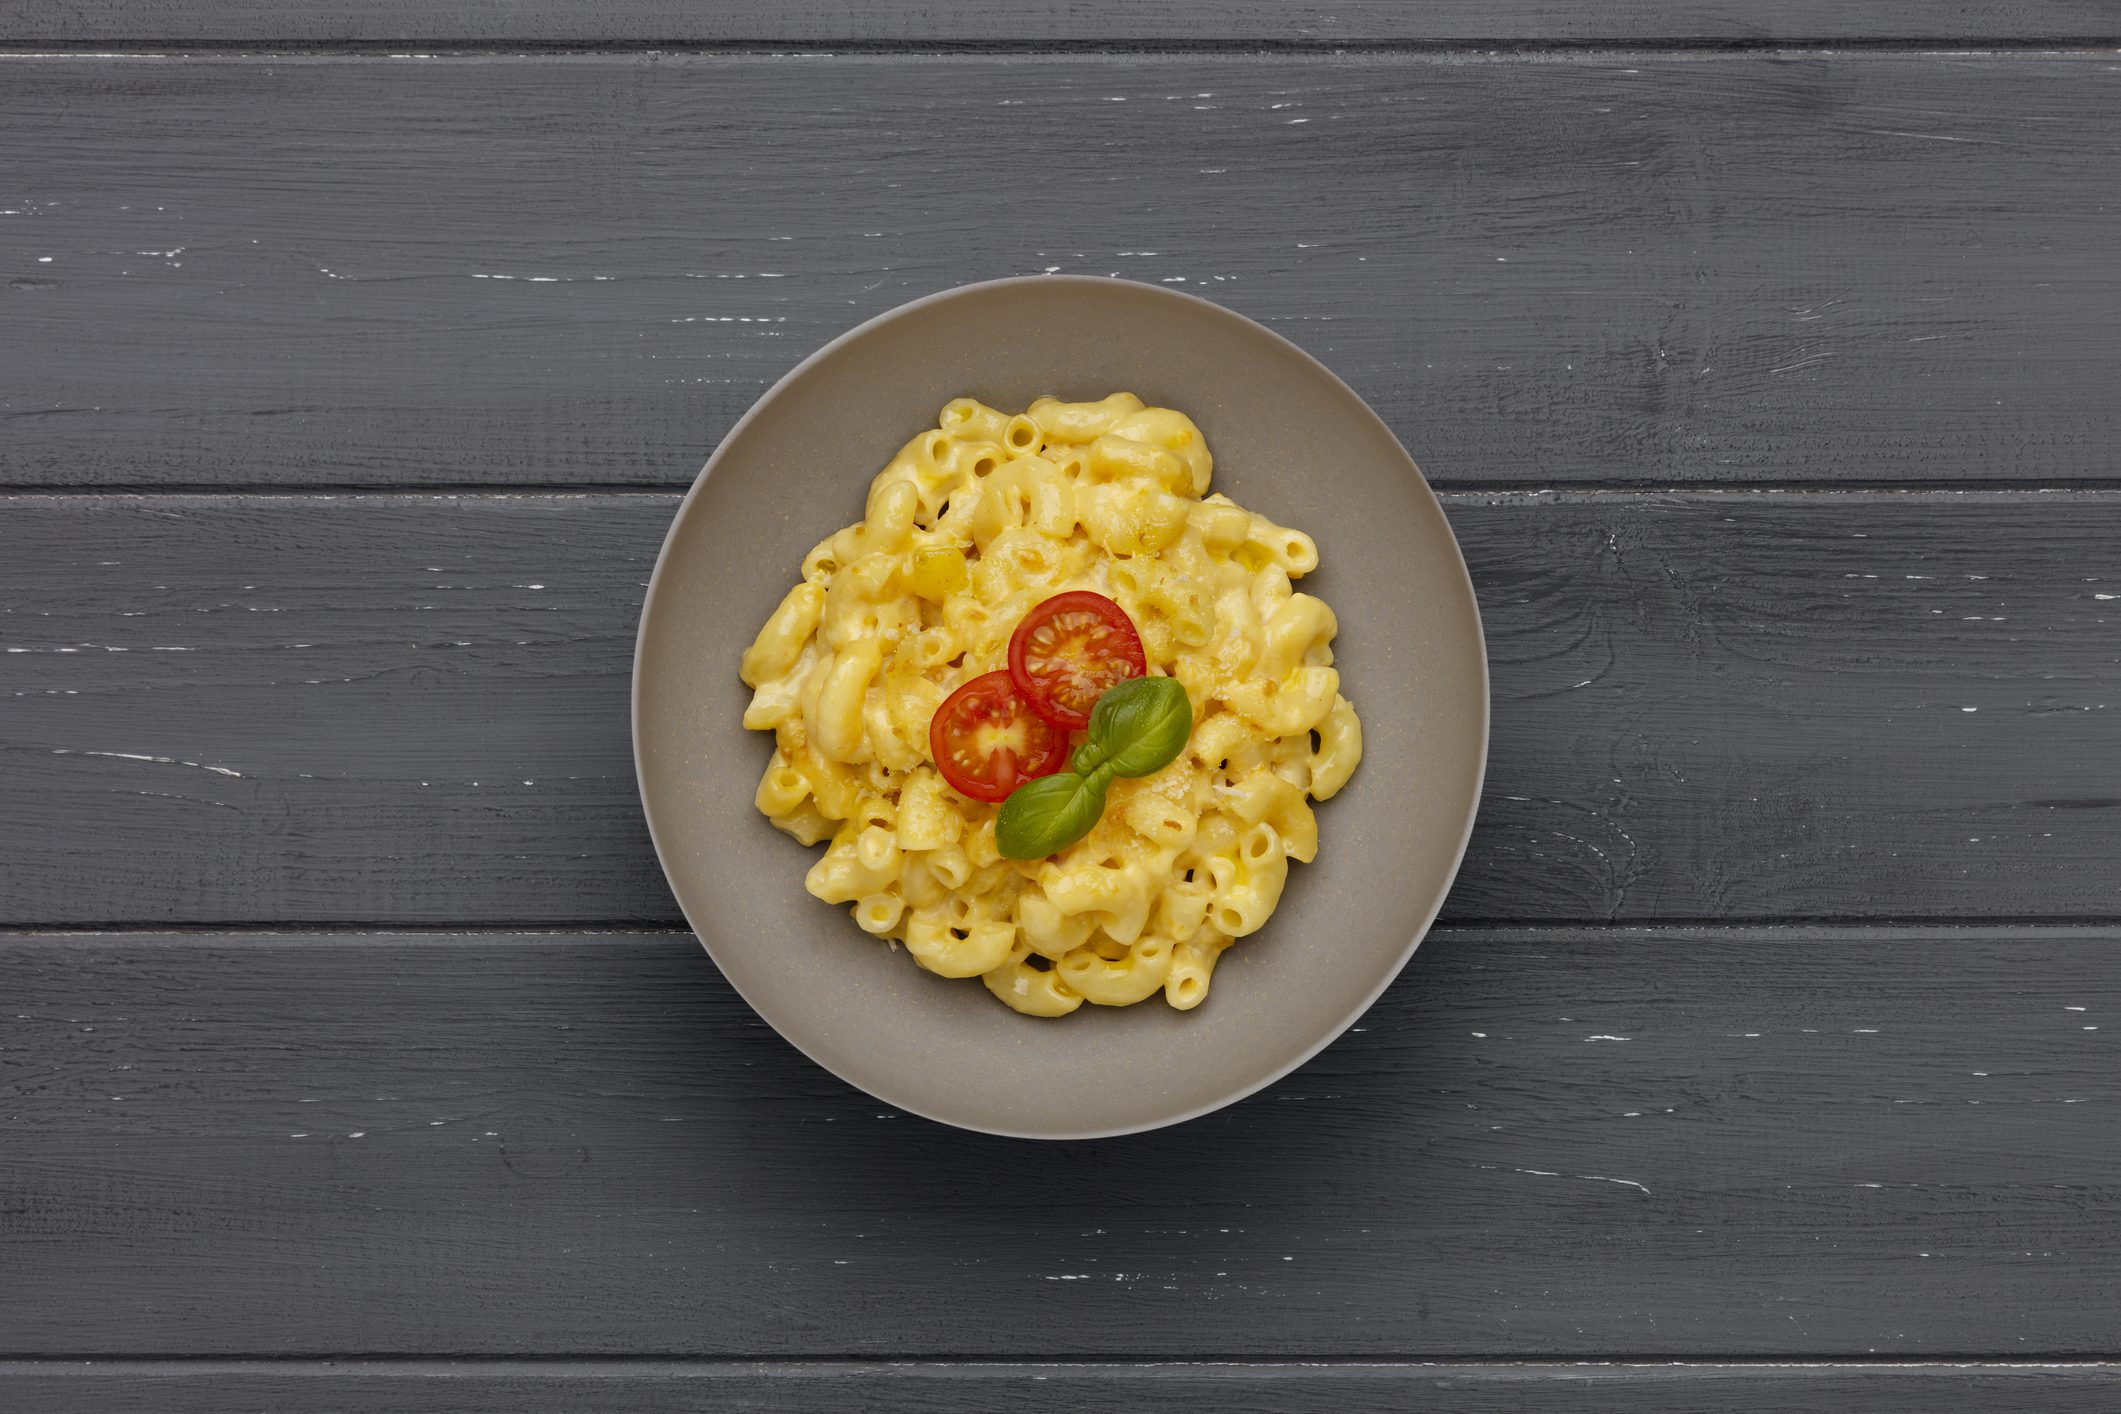 A bowl of delicious Macaroni and cheese, topped with cherry tomatoes and basil, on a distressed wooden background.